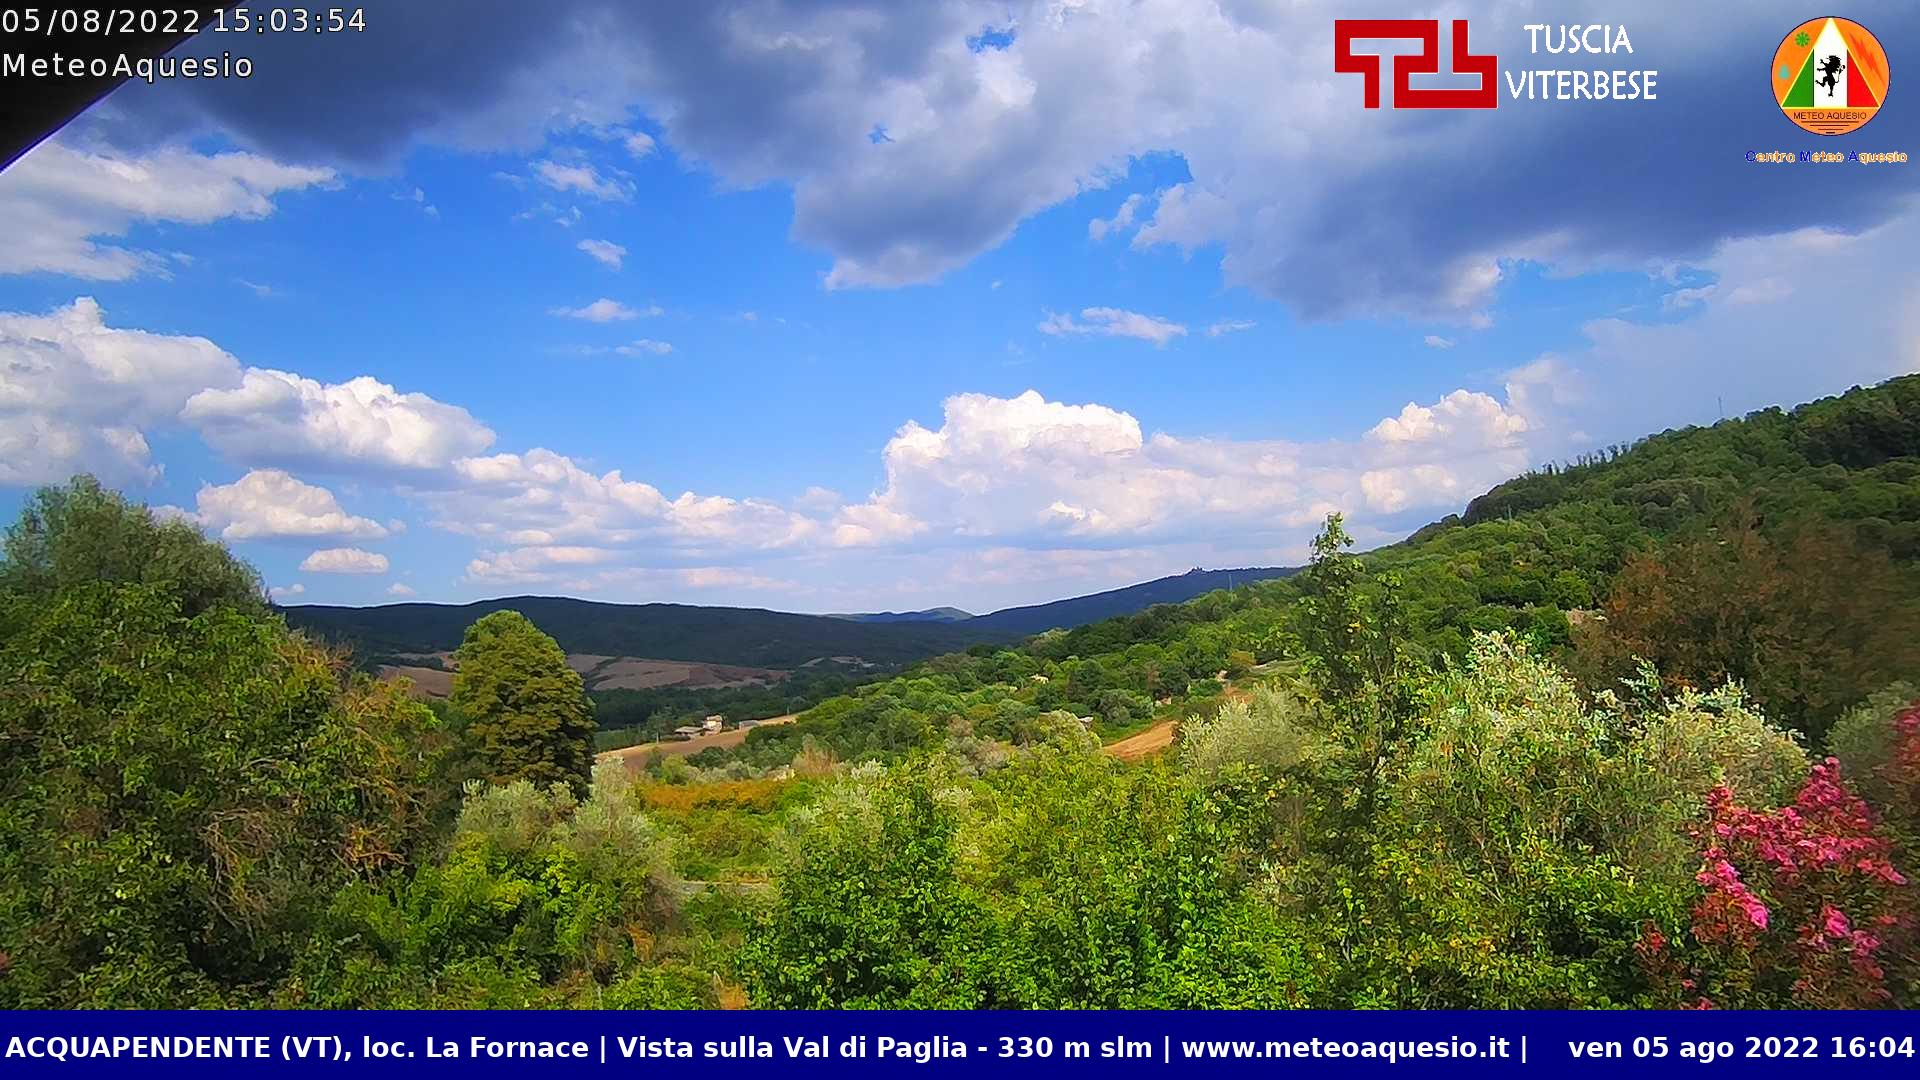 Webcam di Acquapendente (VT)